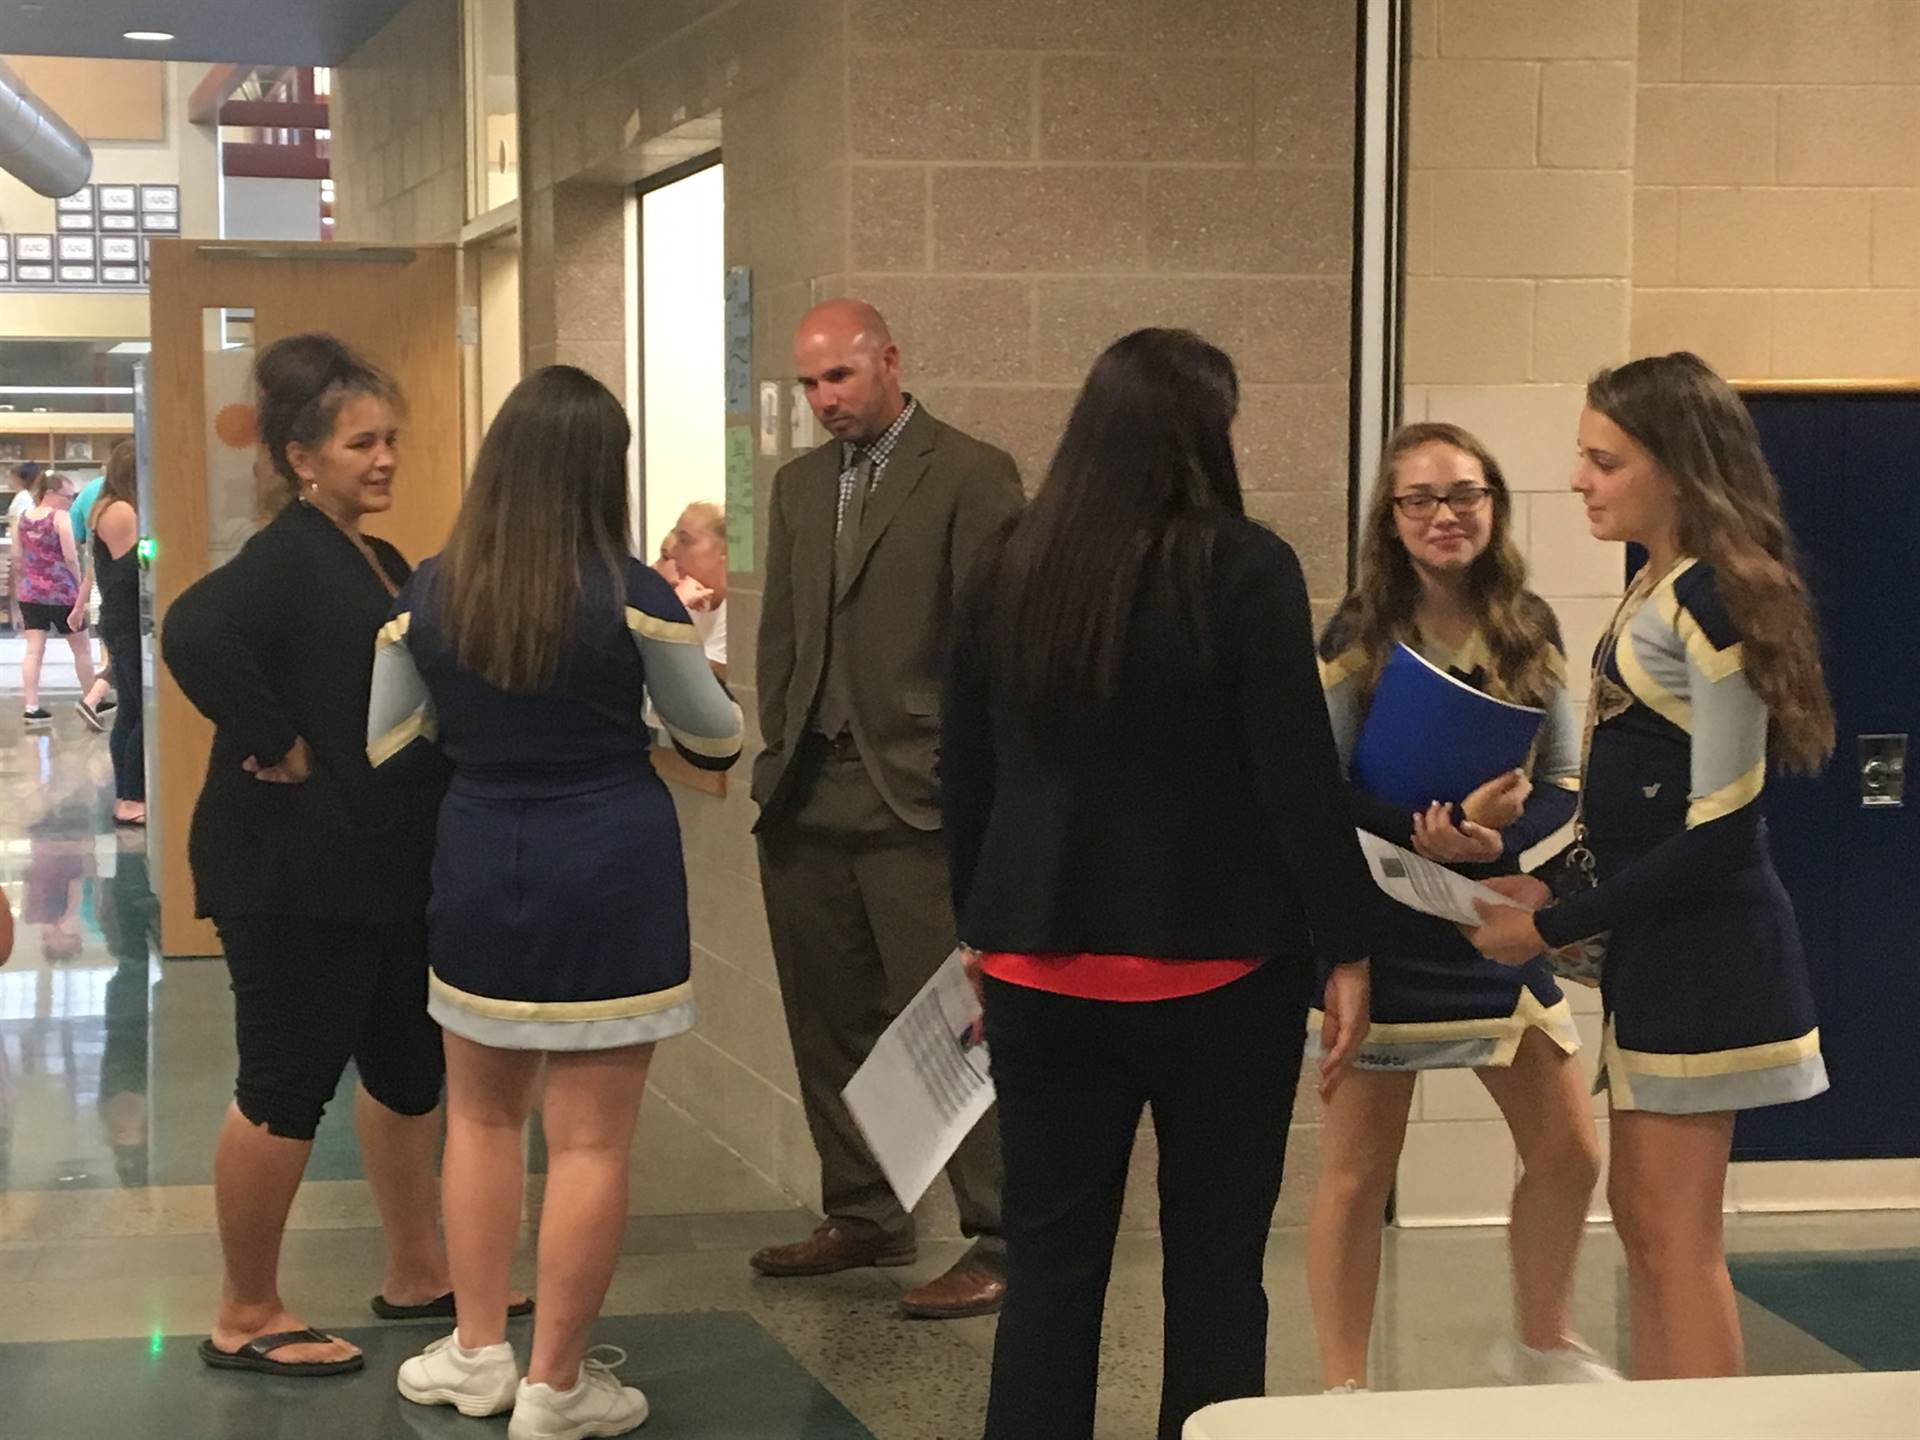 Cheerleaders meeting with school leaders during the open house